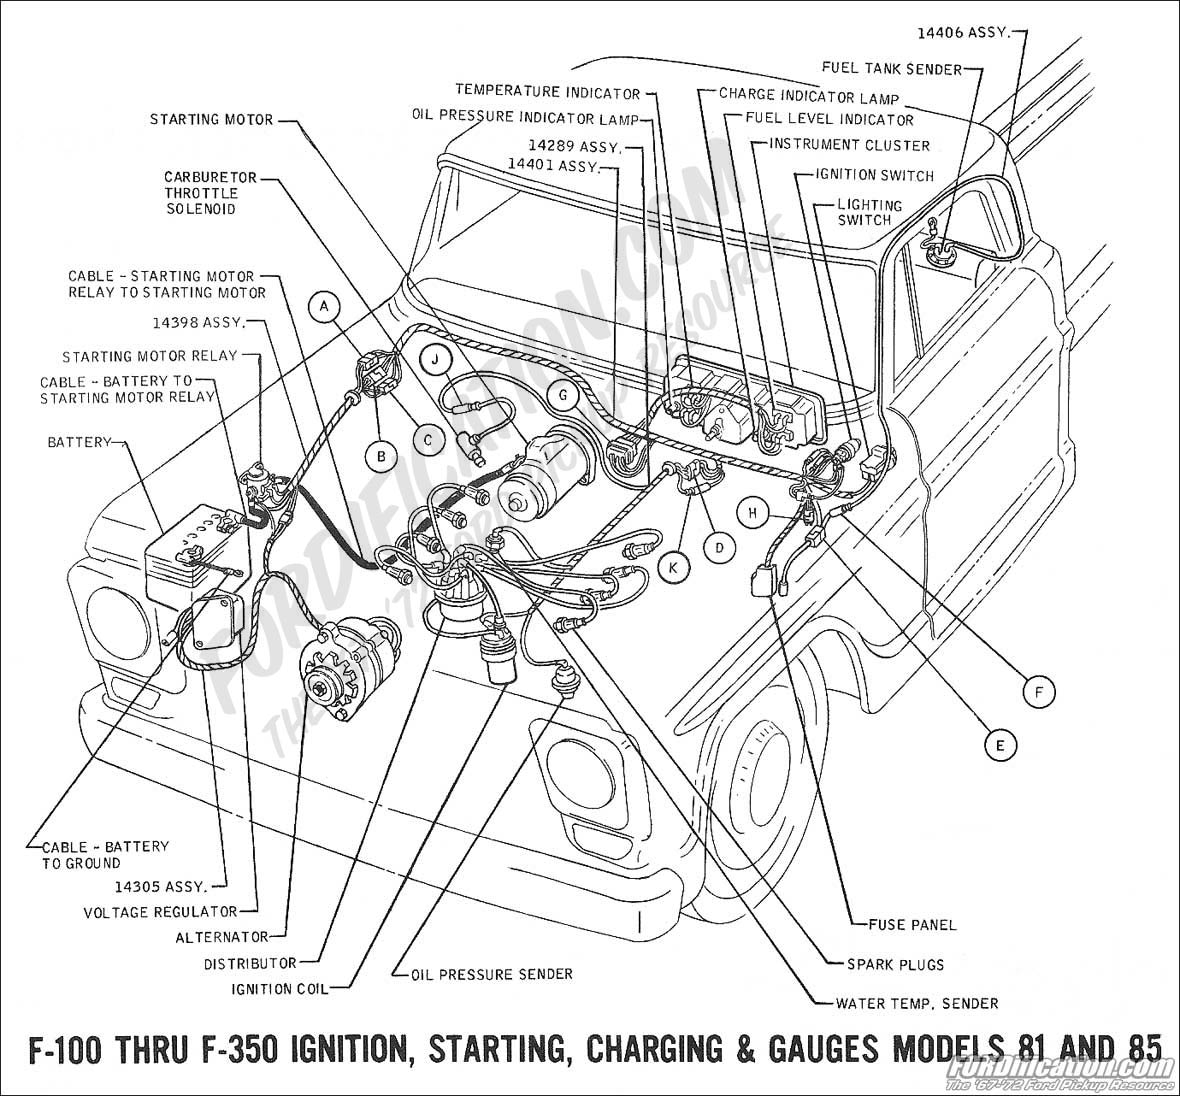 1969 Ford Bronco Engine Diagram Wiring Diagram Report1 Report1 Maceratadoc It